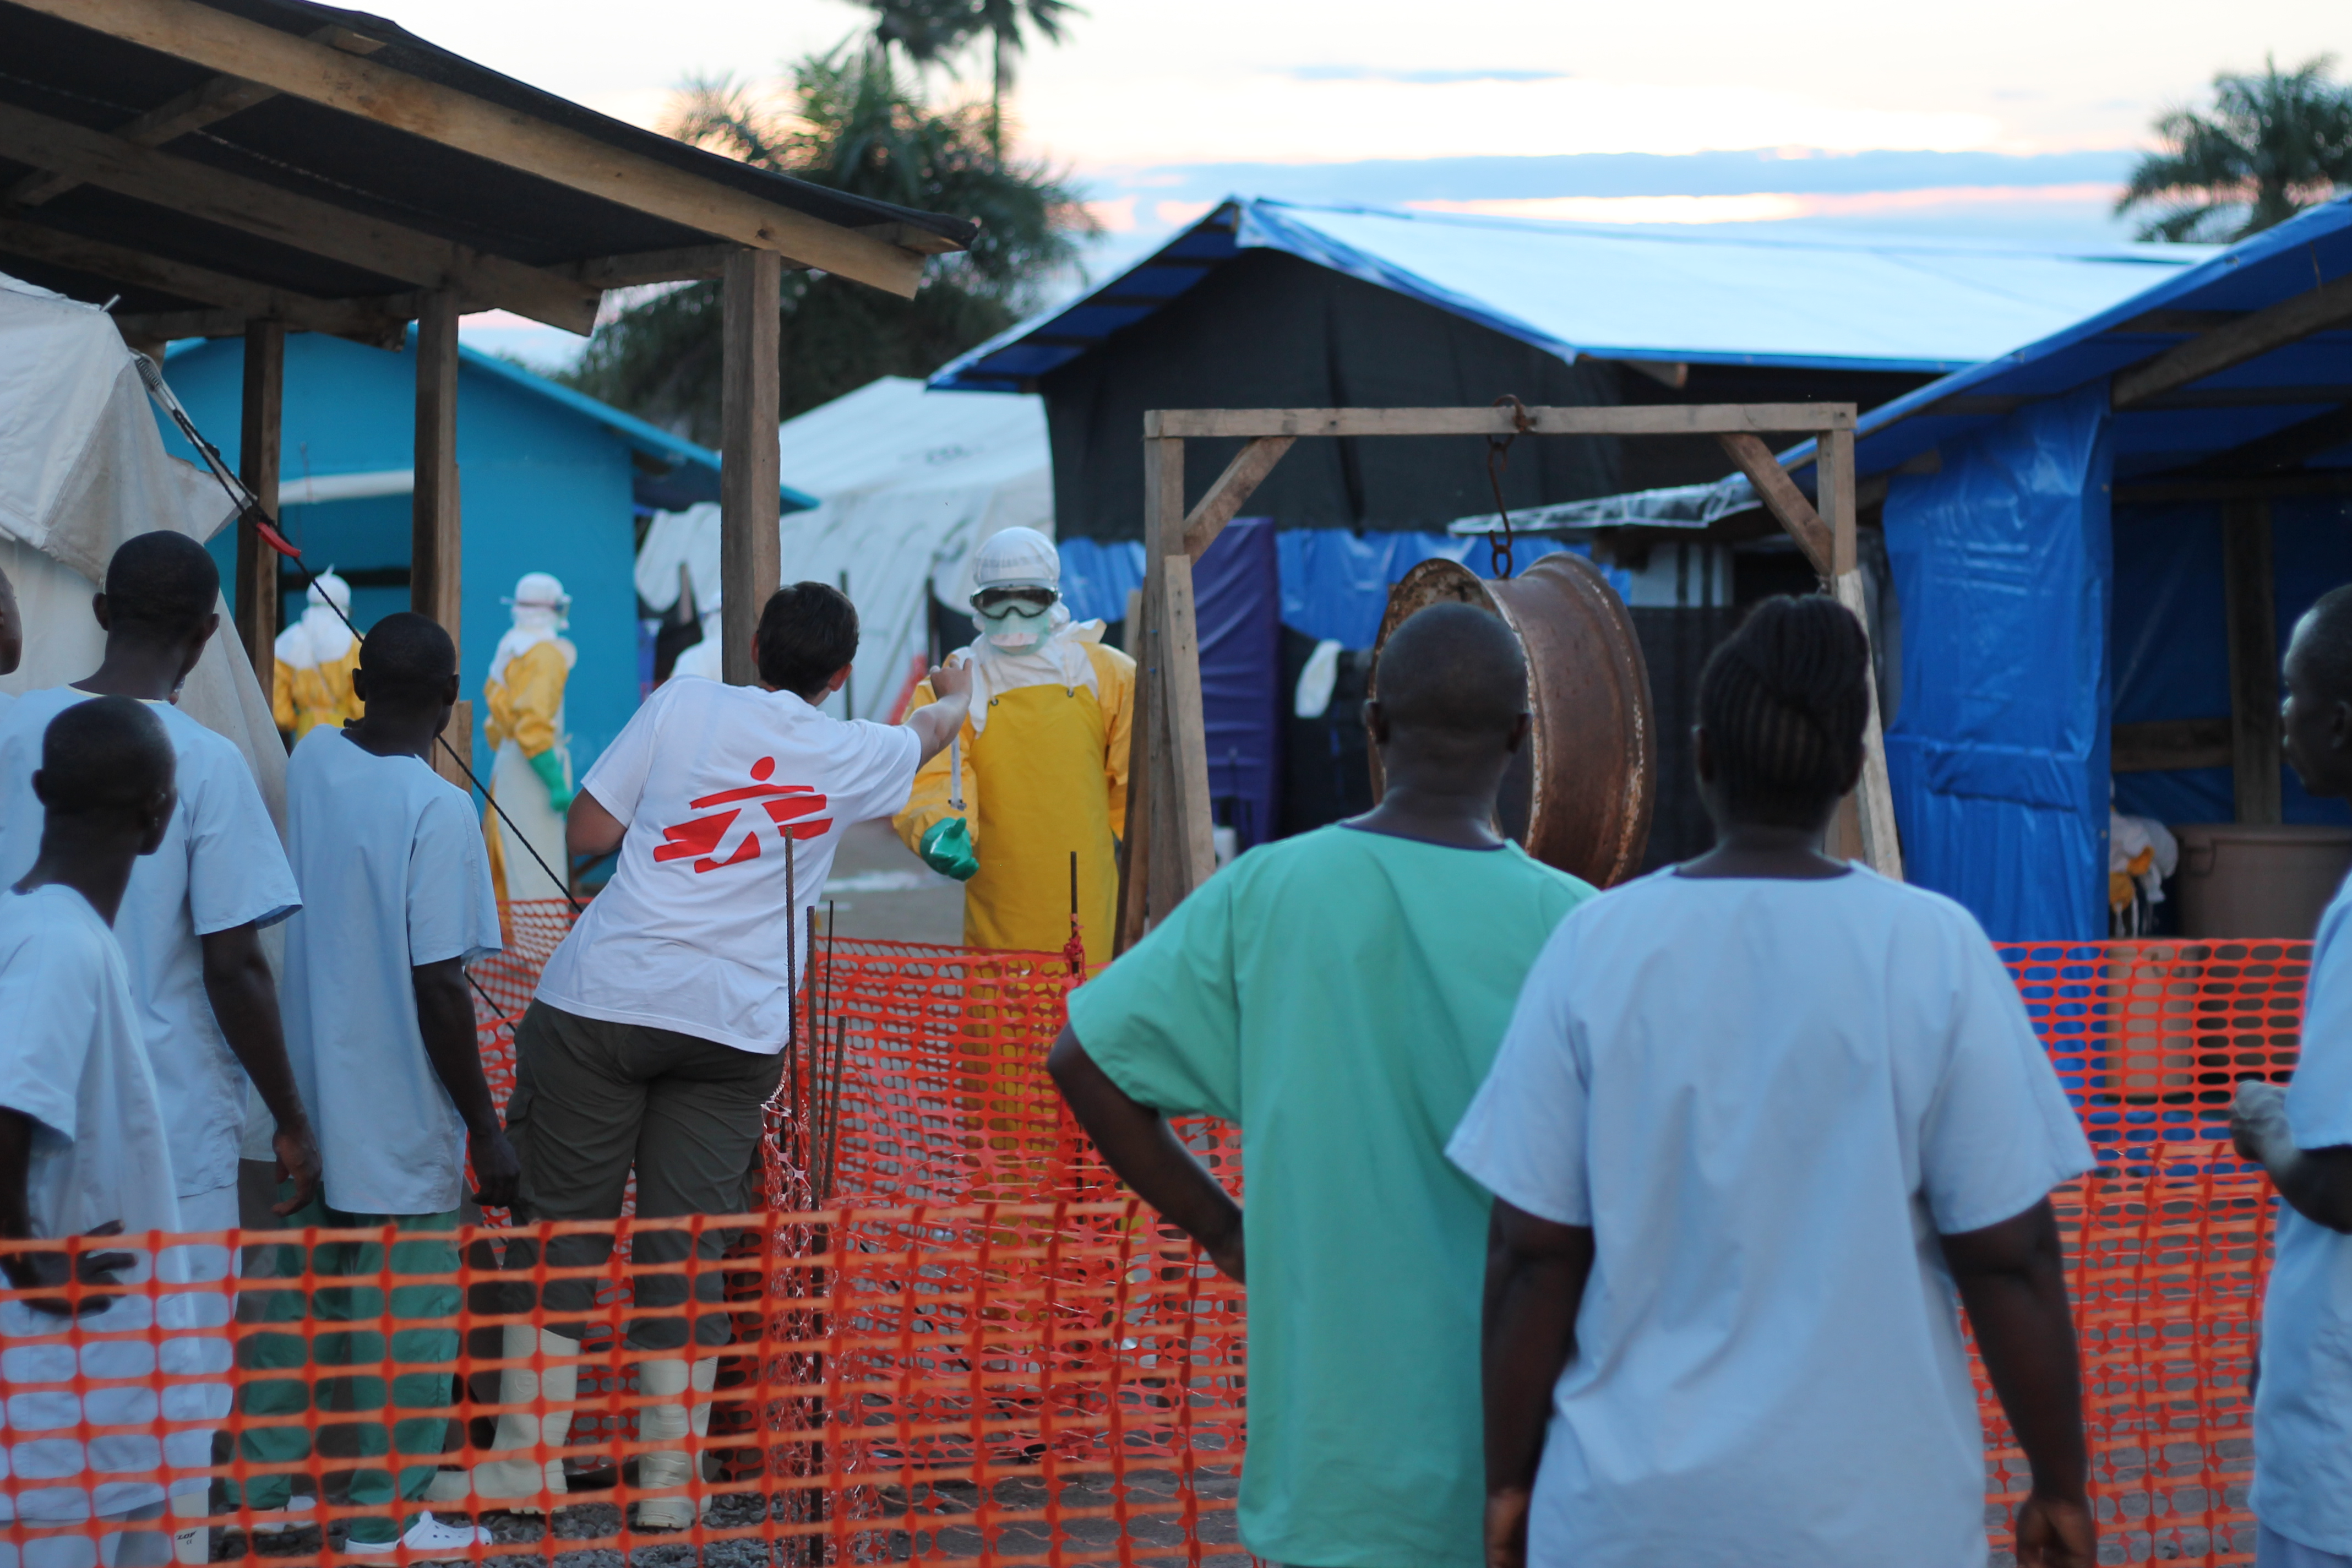 Government Of Canada Formally Recognizes Doctors Without Borders Efforts In The Fight Against Ebola